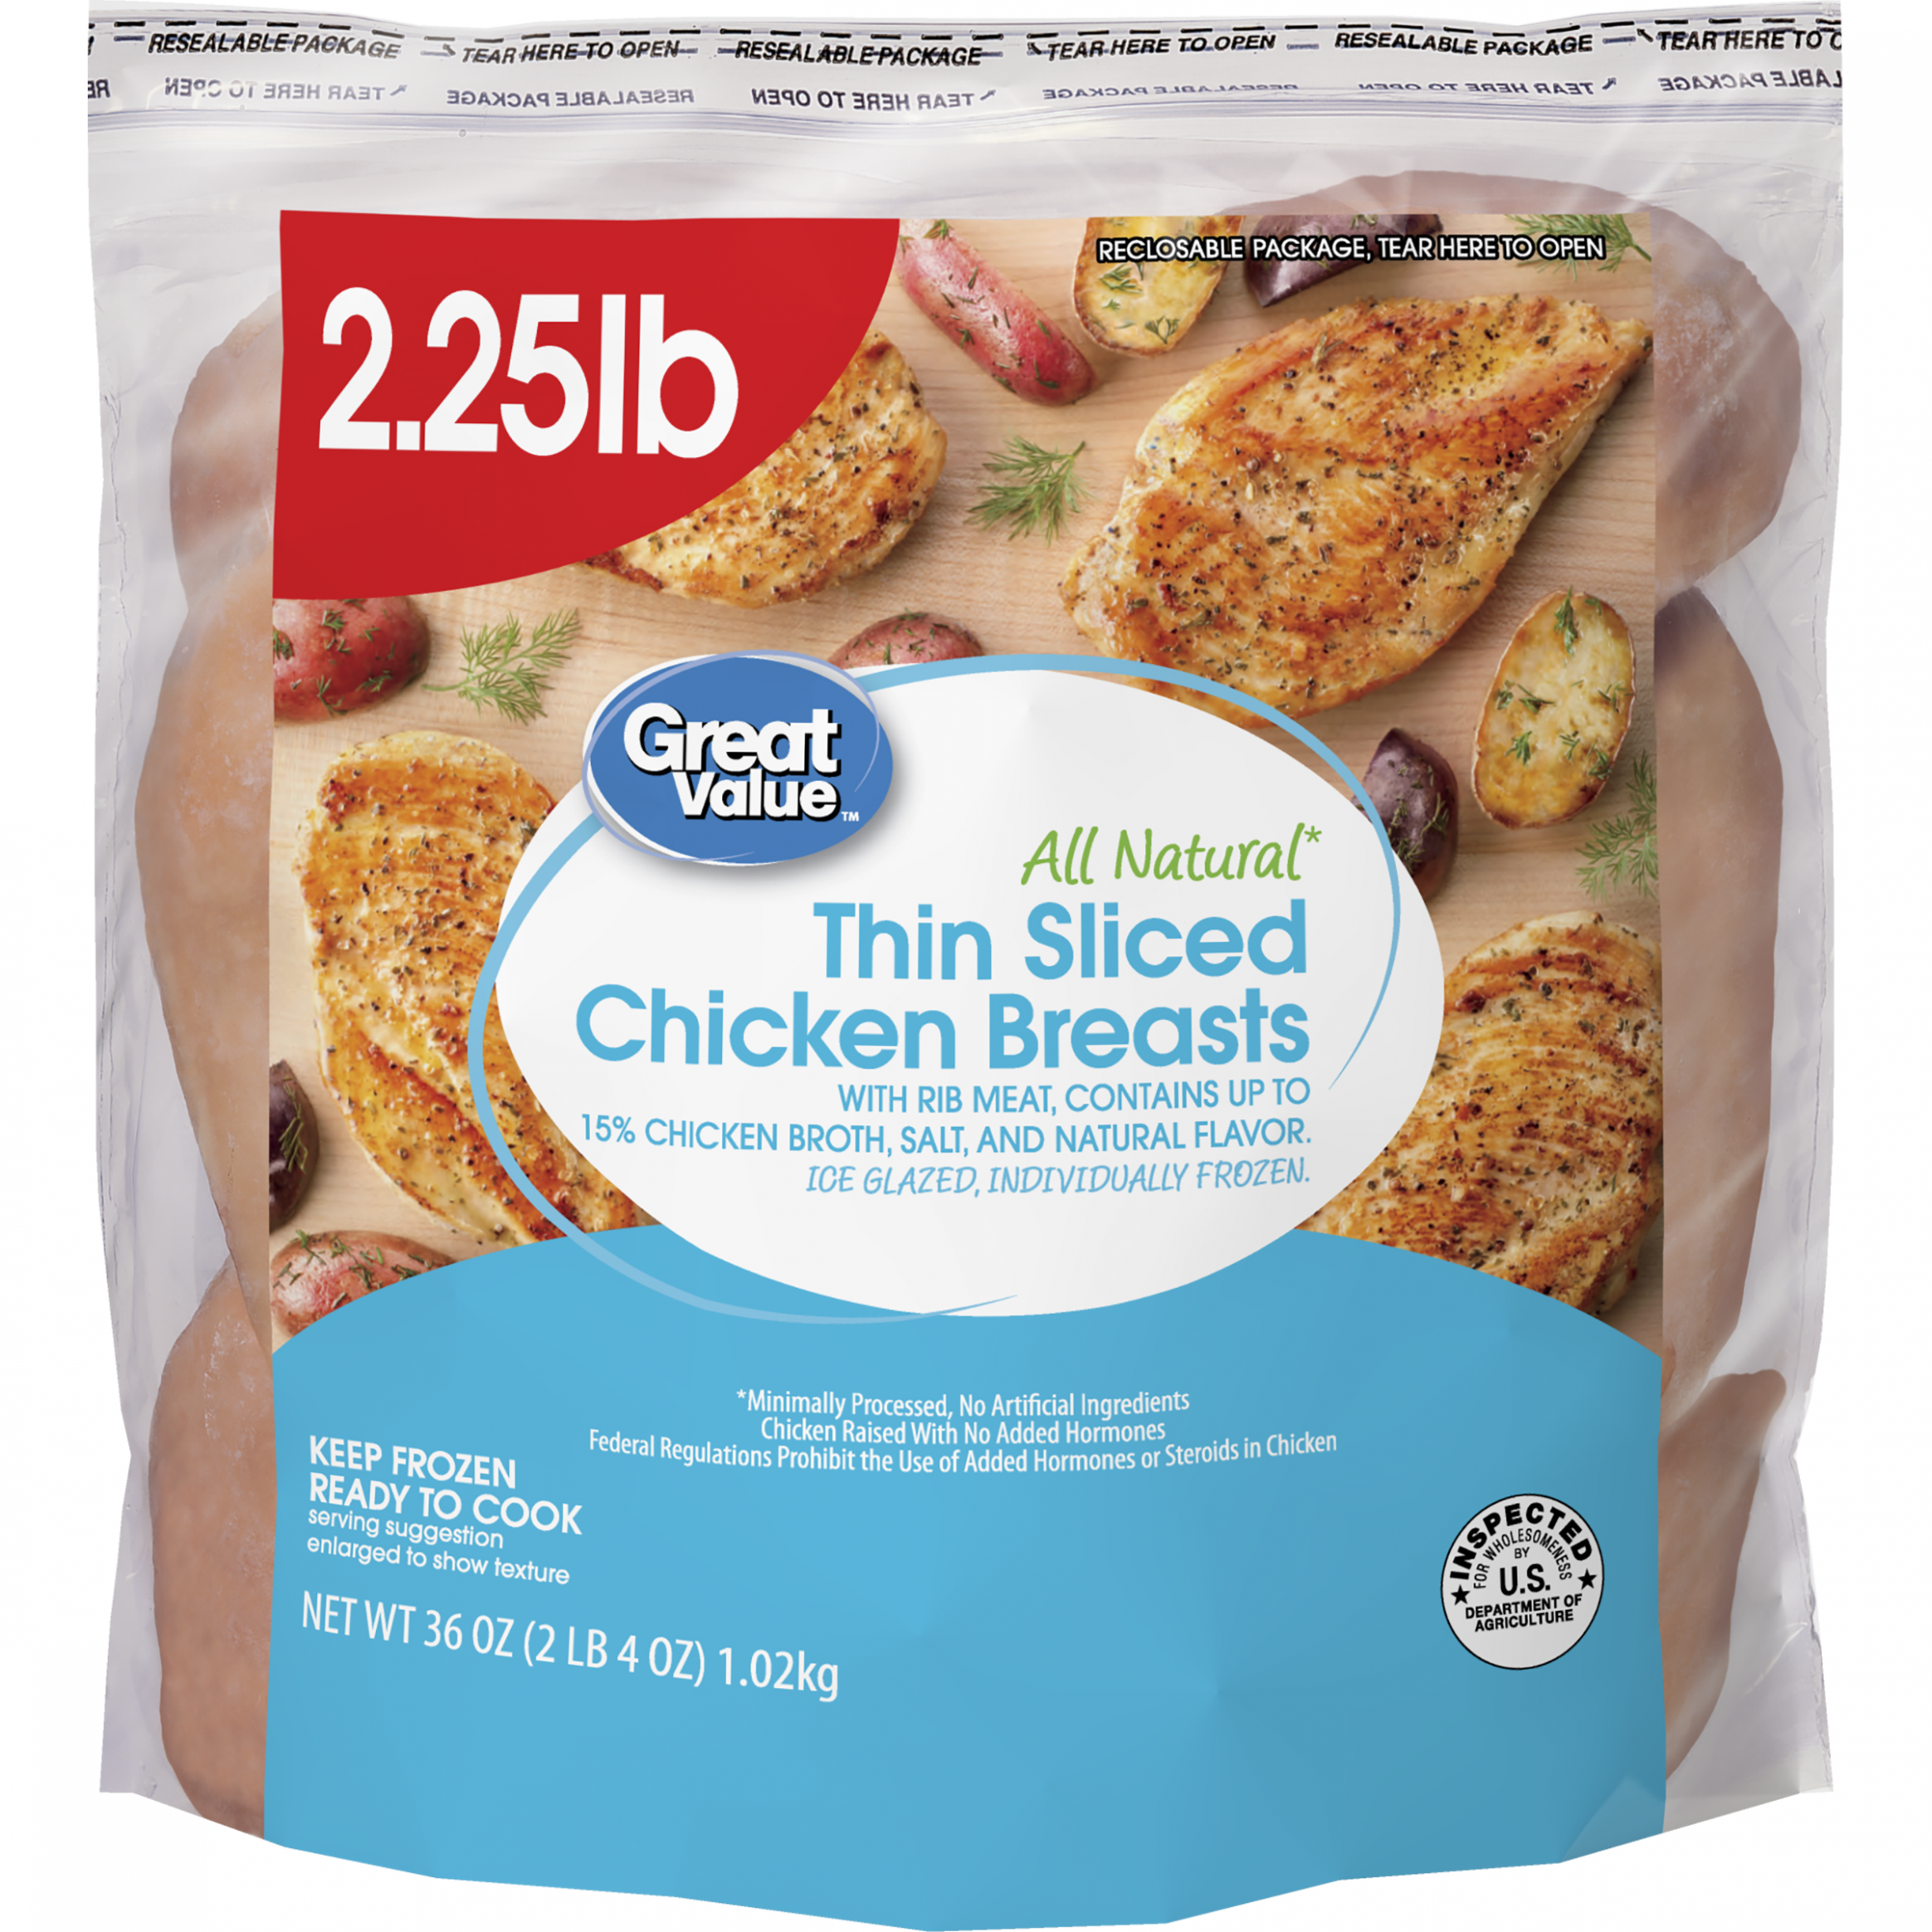 Great Value Thin Sliced Chicken Breasts, All Natural, 15 Oz - Walmart